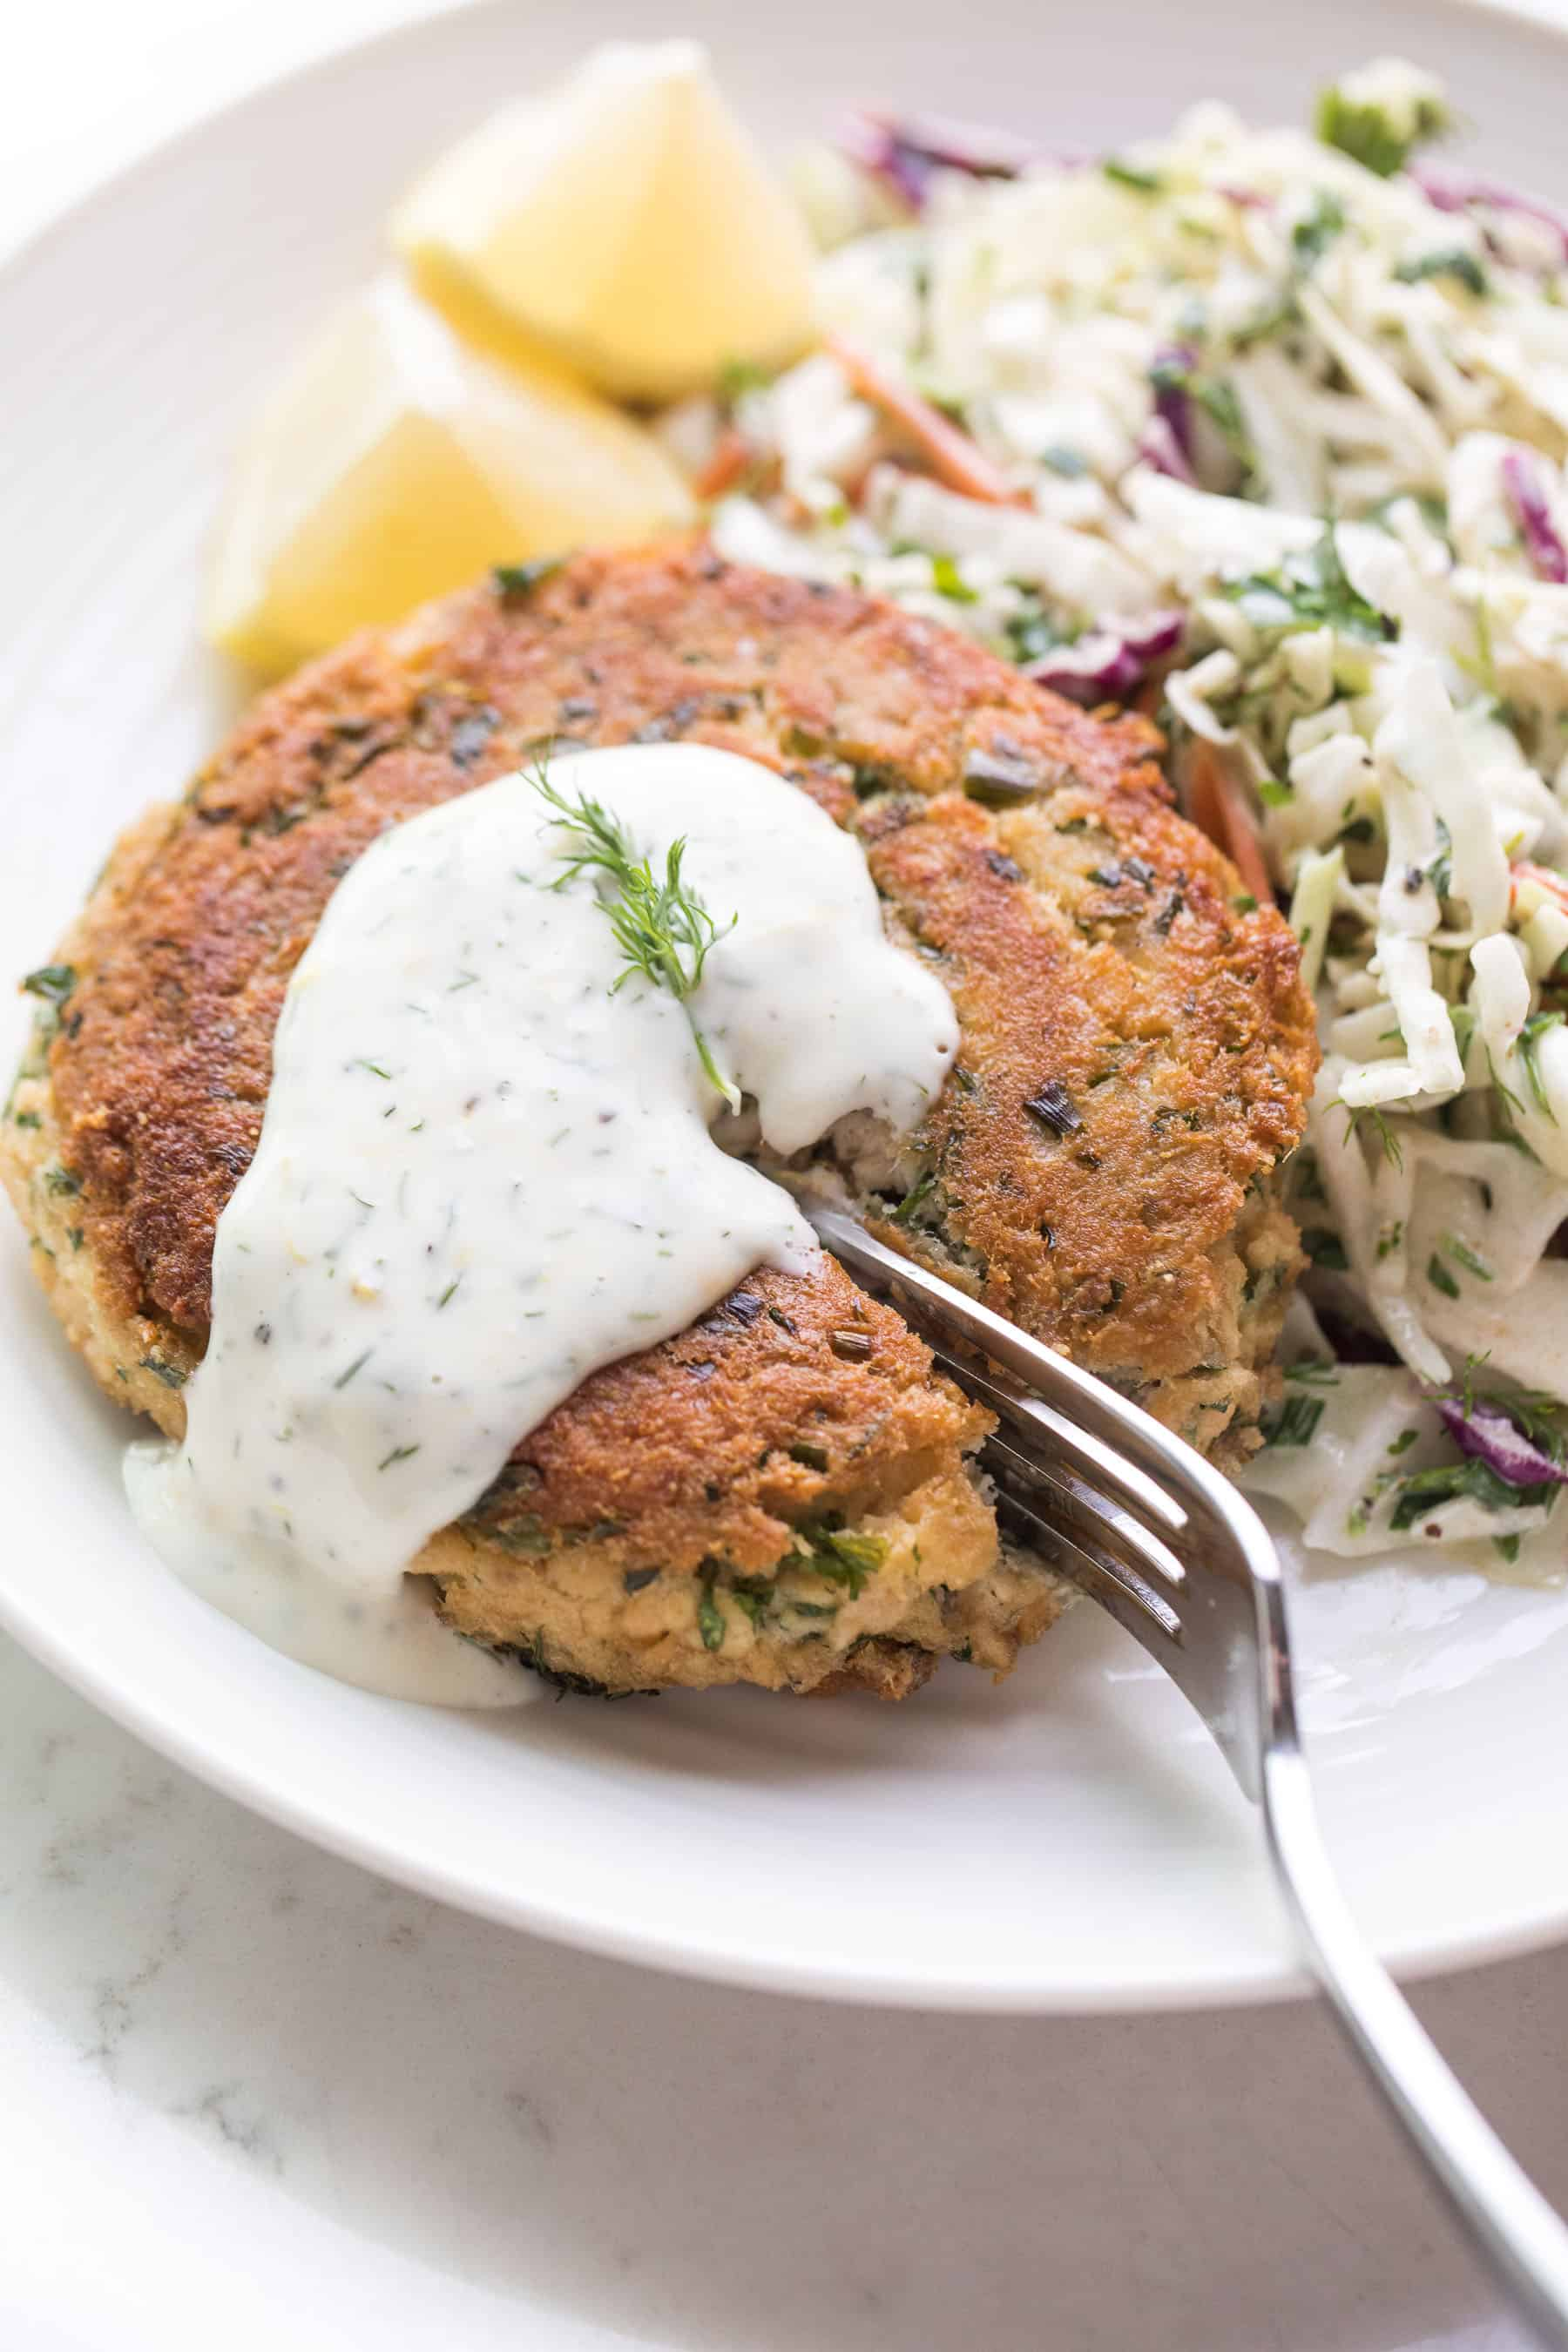 A fork cutting into a salmon cake